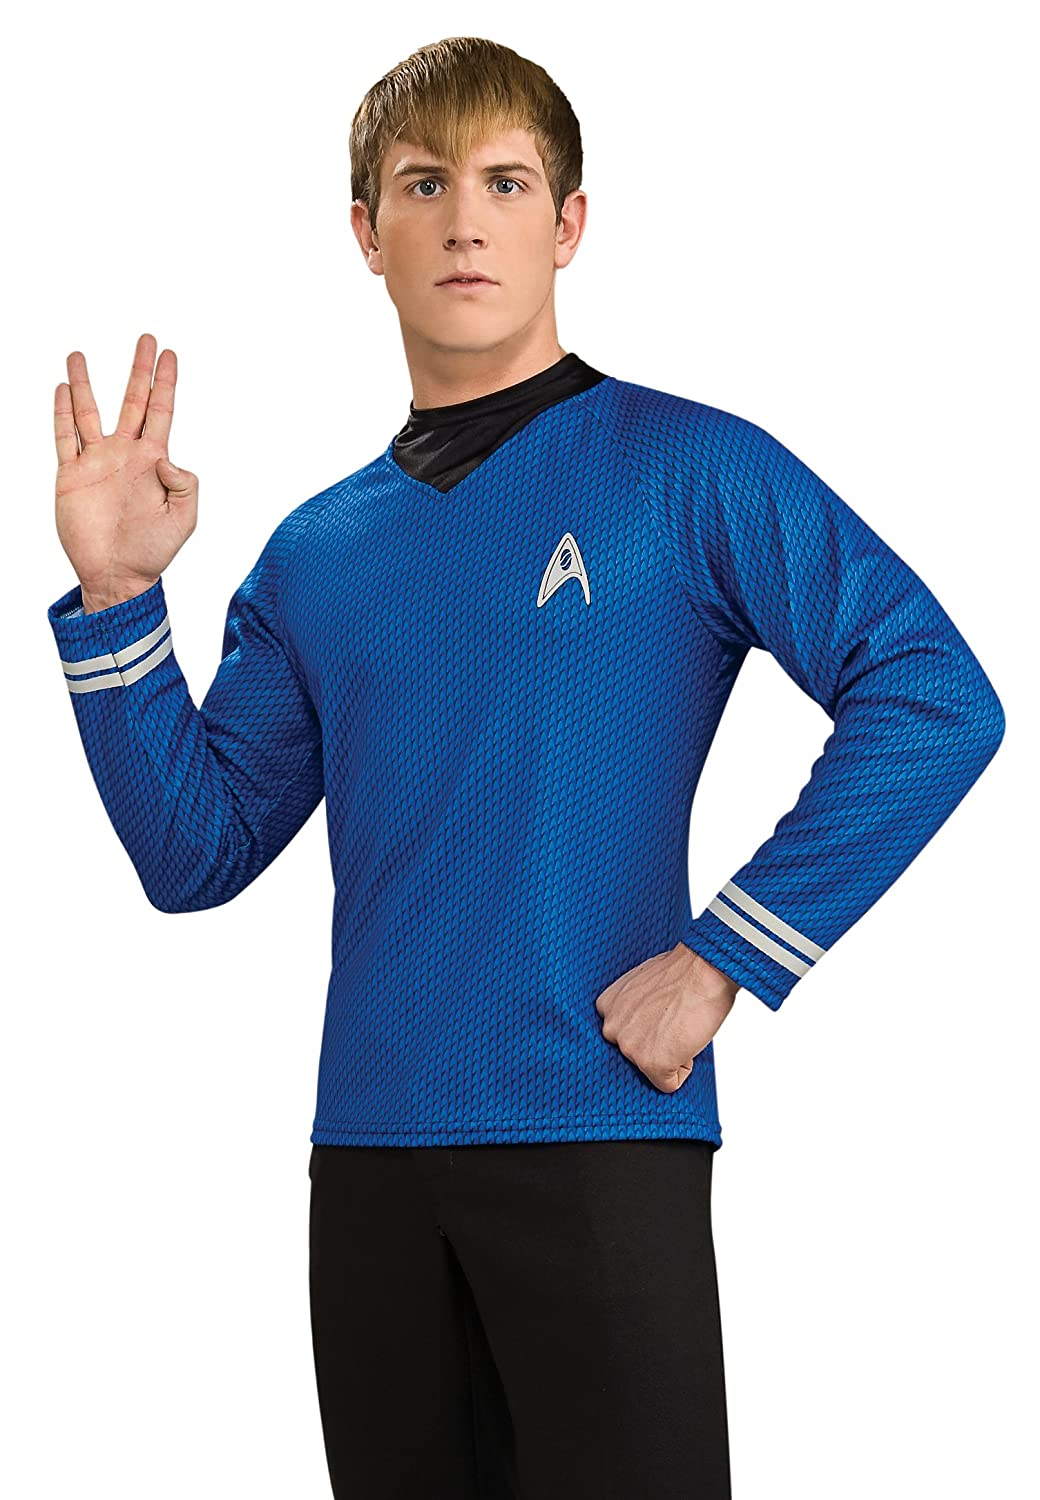 Rubie's Costume Star Trek Into Darkness Deluxe Spock Shirt With Emblem Rubies Costumes - Apparel